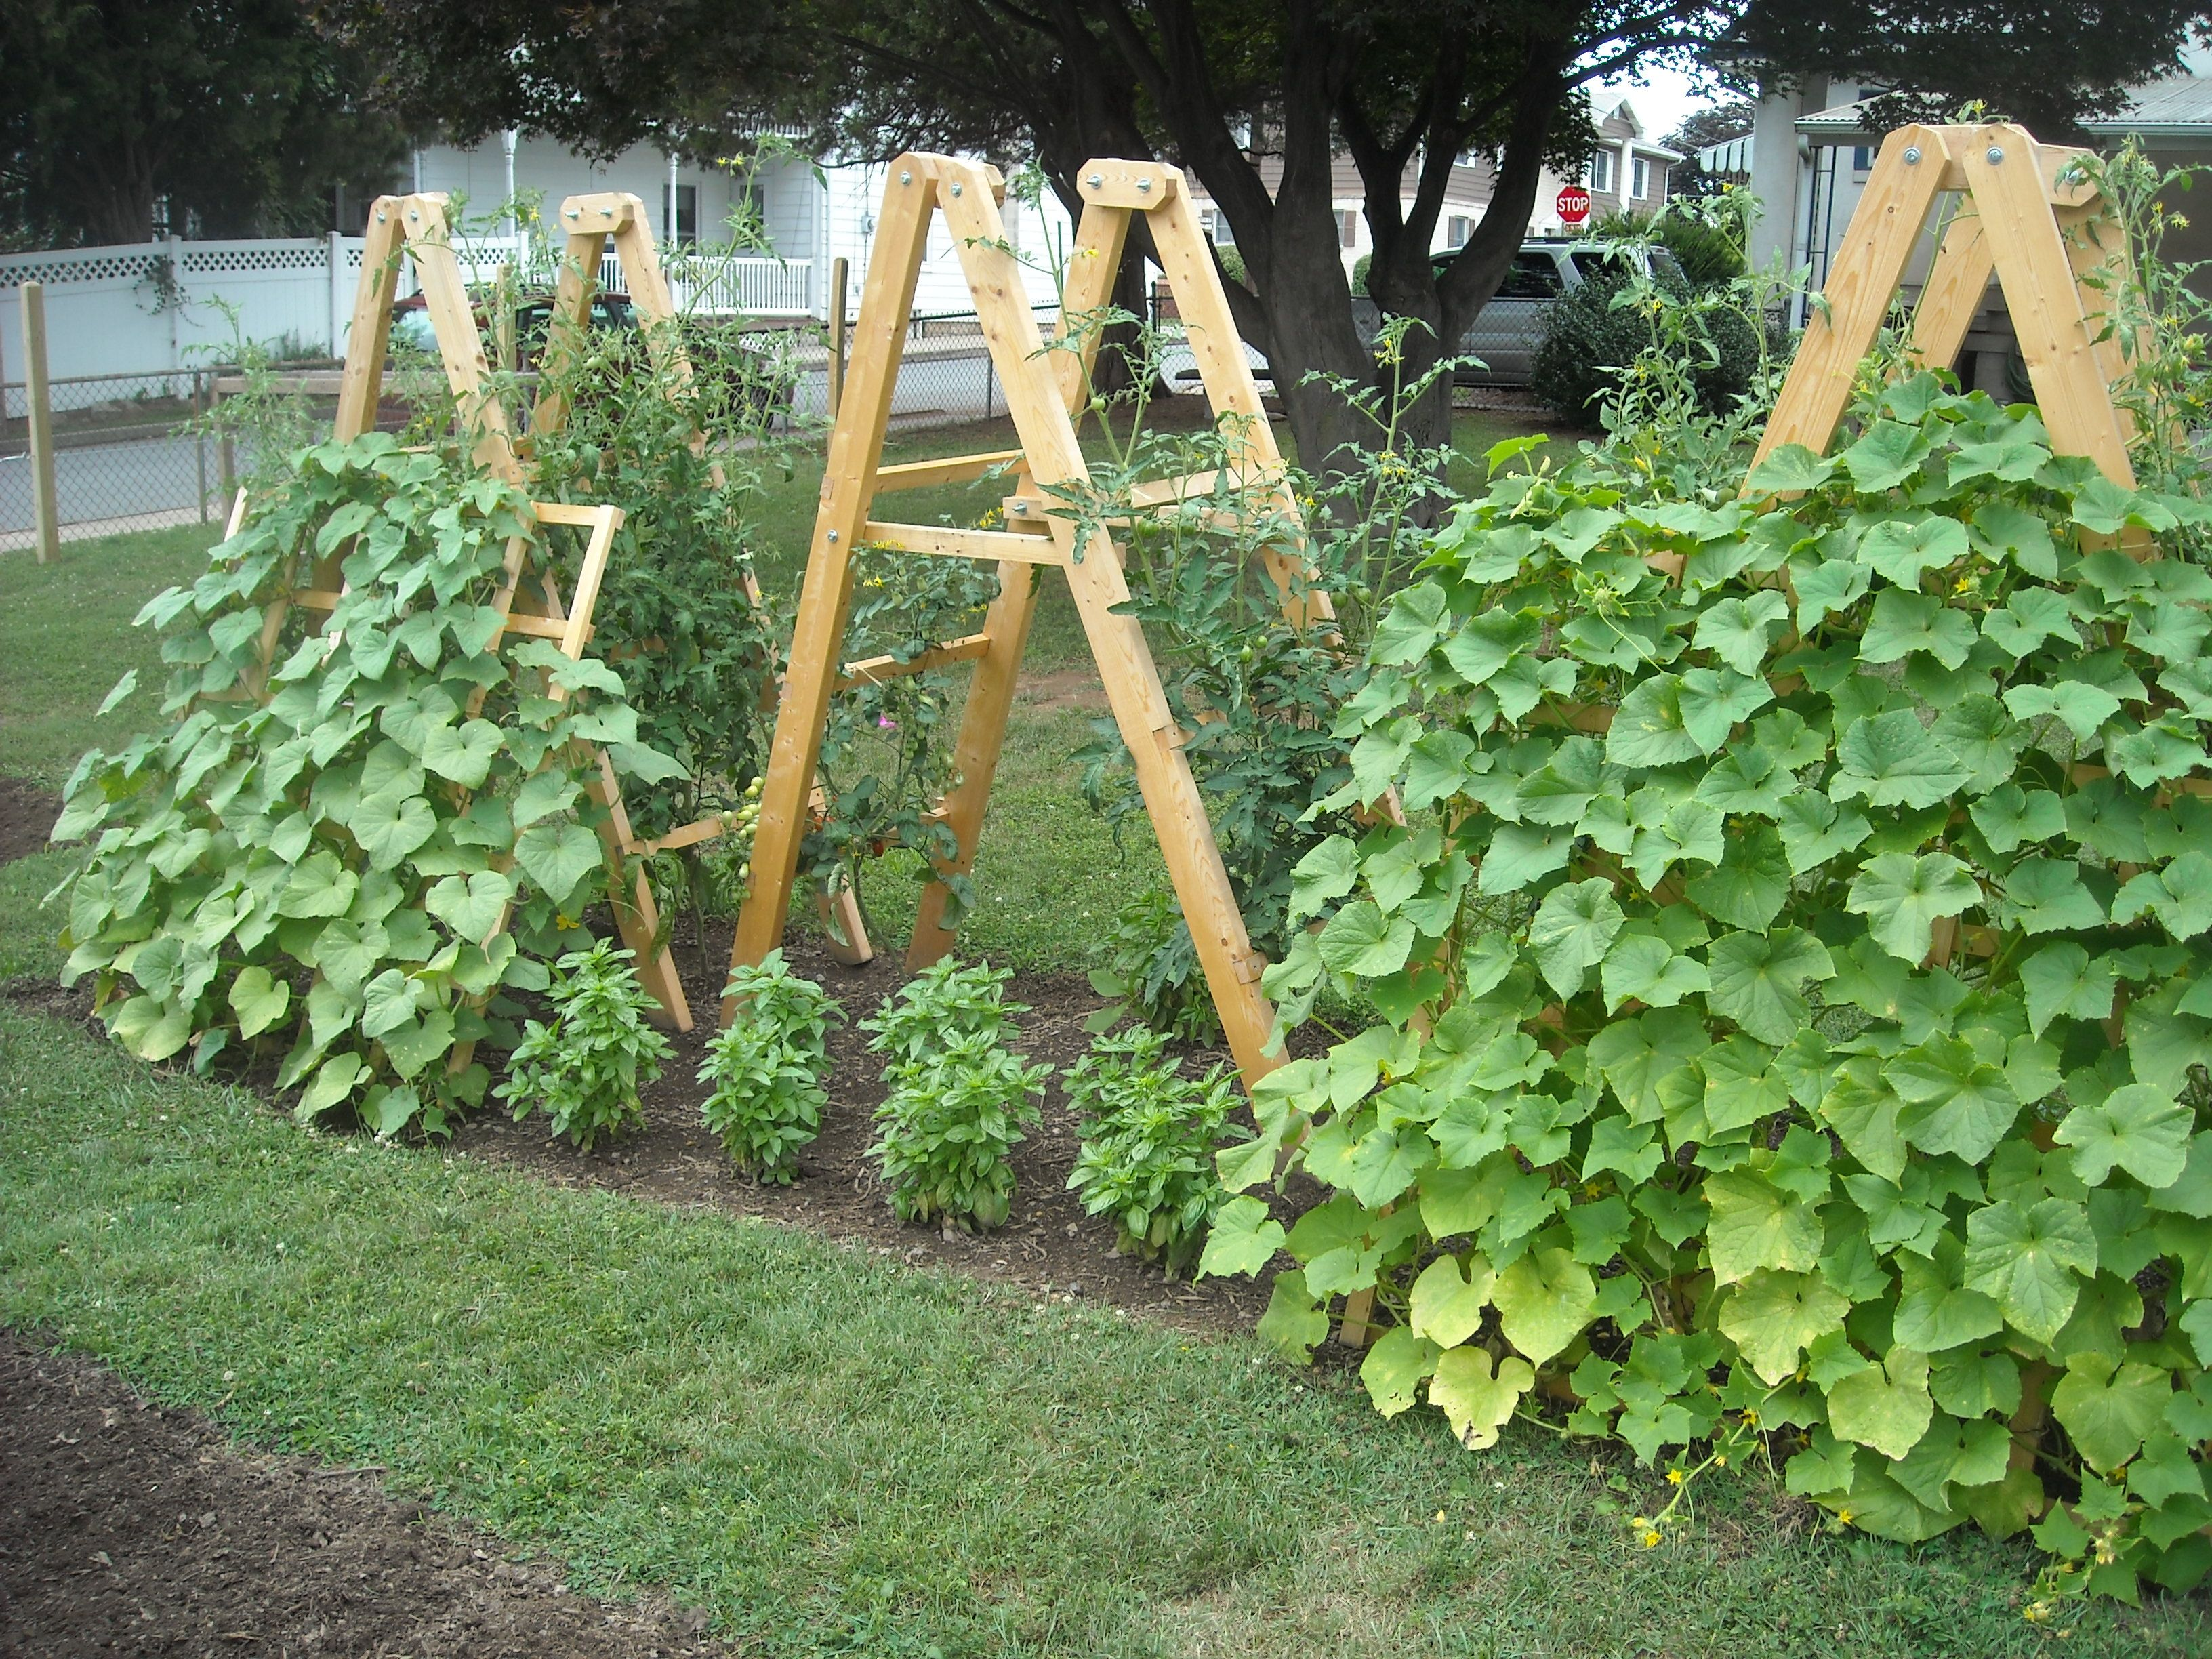 Lovely Zucchini Trellis Ideas Part - 3: Tomato Ladders U0026 Cucumber Trellis , Wow This Is Neat And Easy ~~~ Ladders!  Of Course!